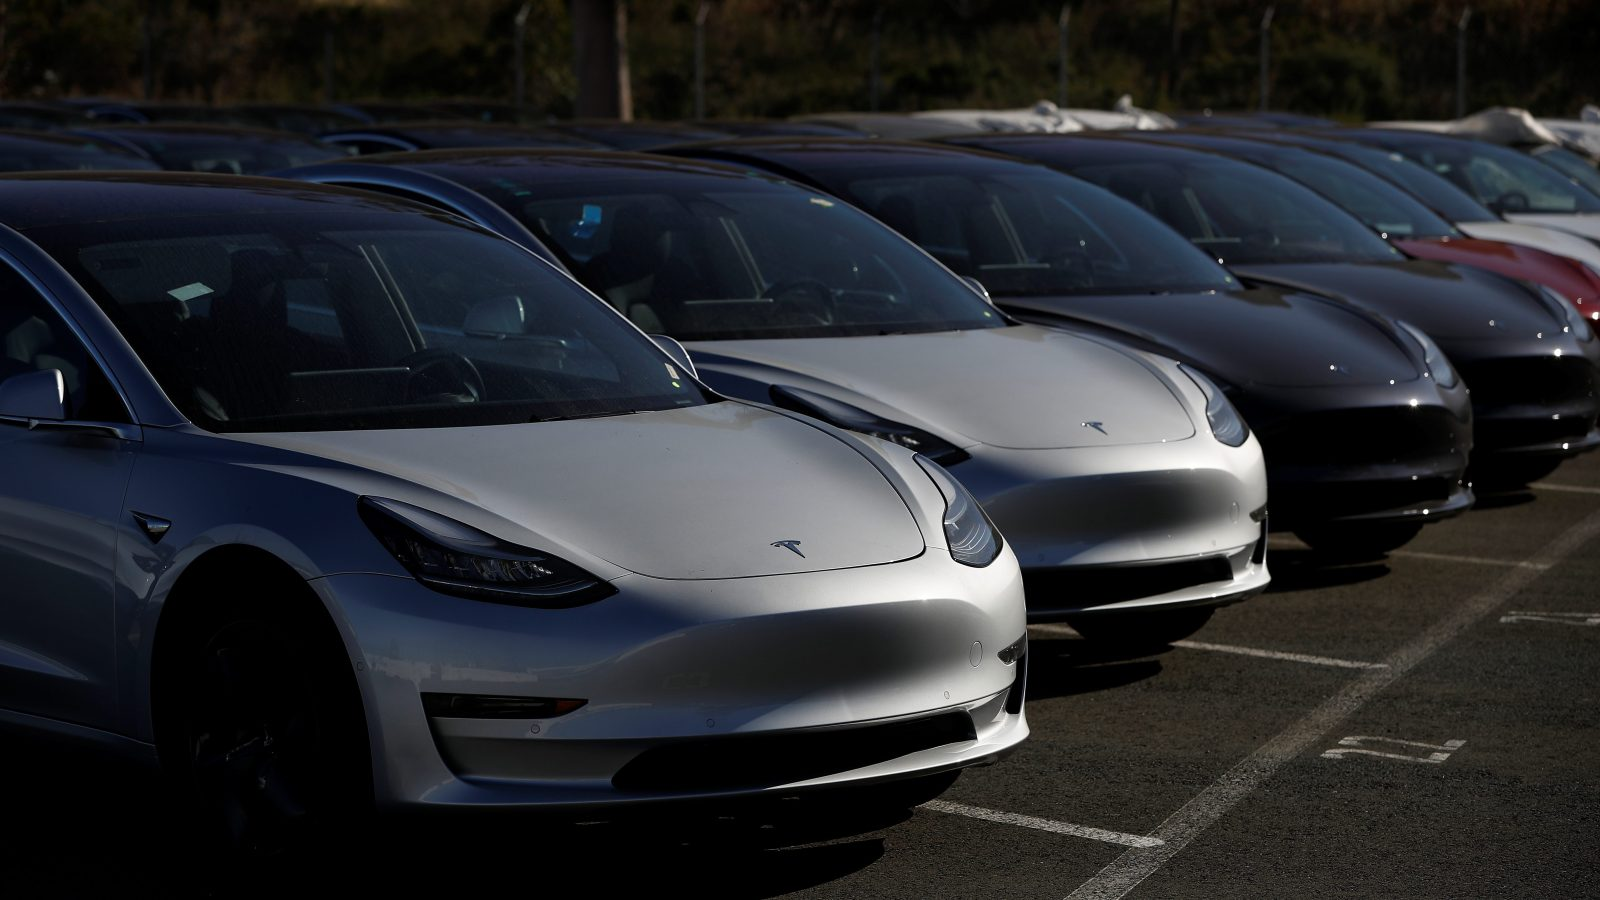 qz.com - Ananya Bhattacharya - Tesla's Model 3 is the first electric car-and first foreign car-to top Europe's sales charts